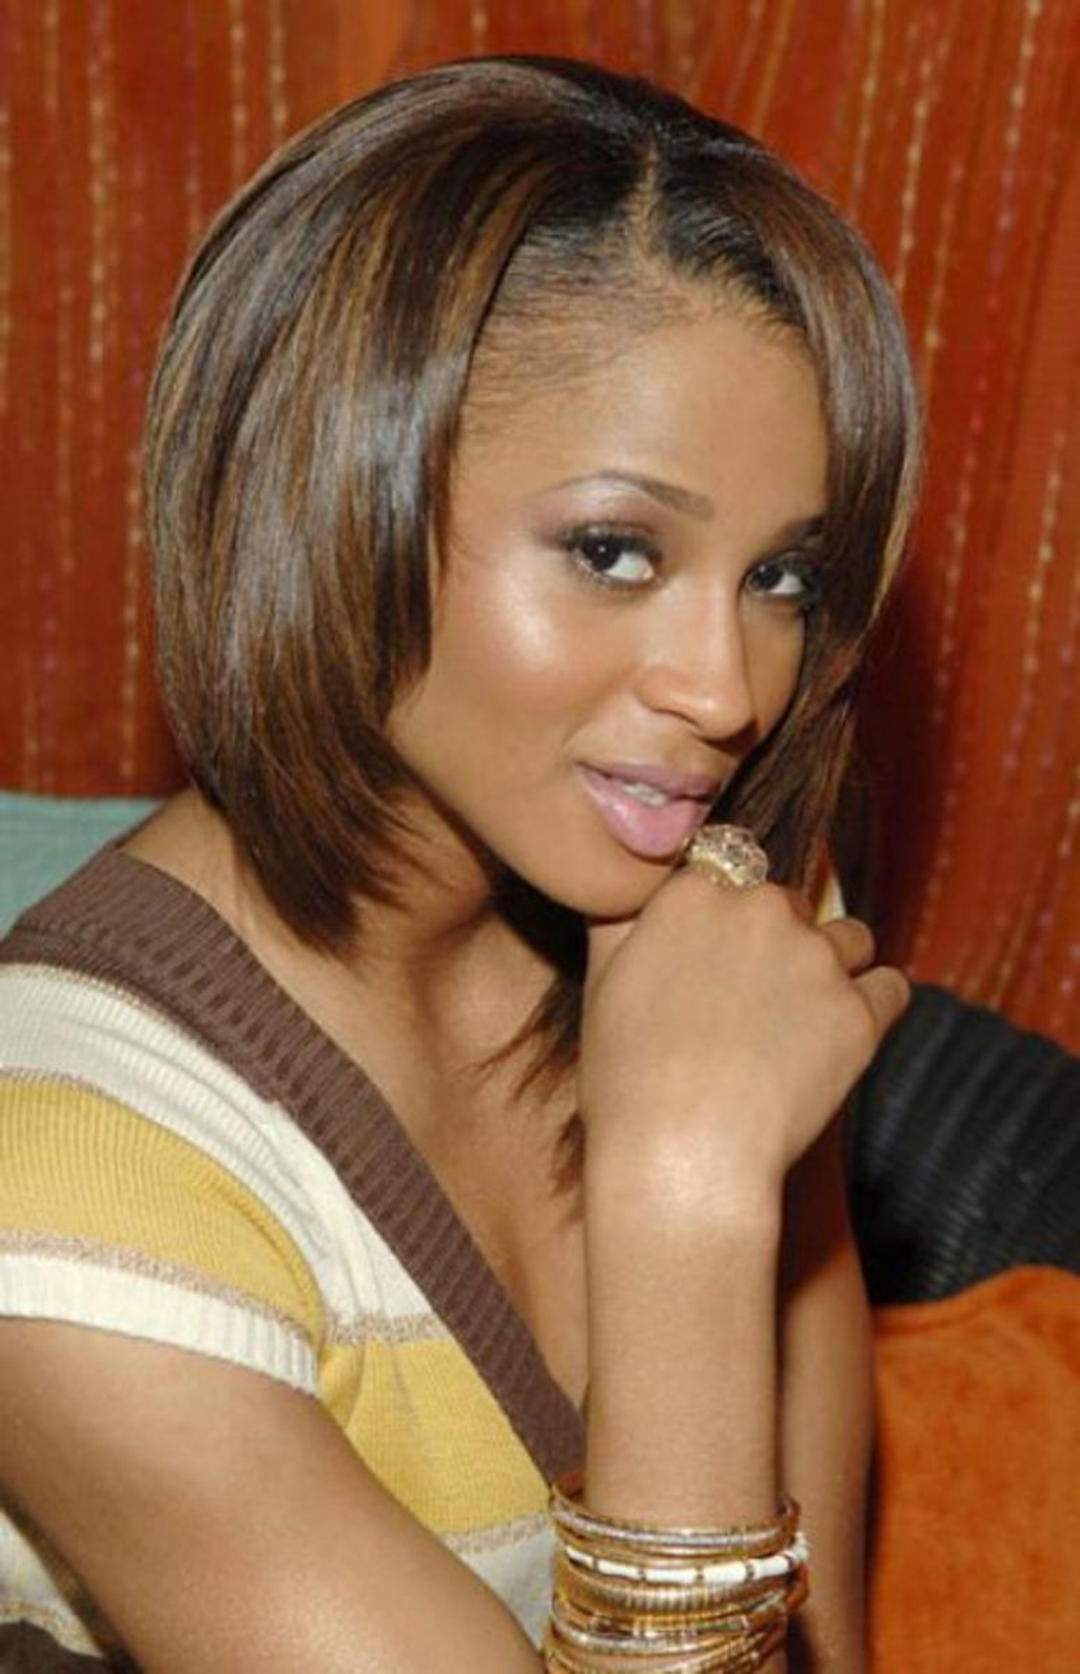 Well Known Medium Hairstyles For African American Hair With Shoulder Length Bob Hairstyles For Black Women Medium Length Bob (View 13 of 20)